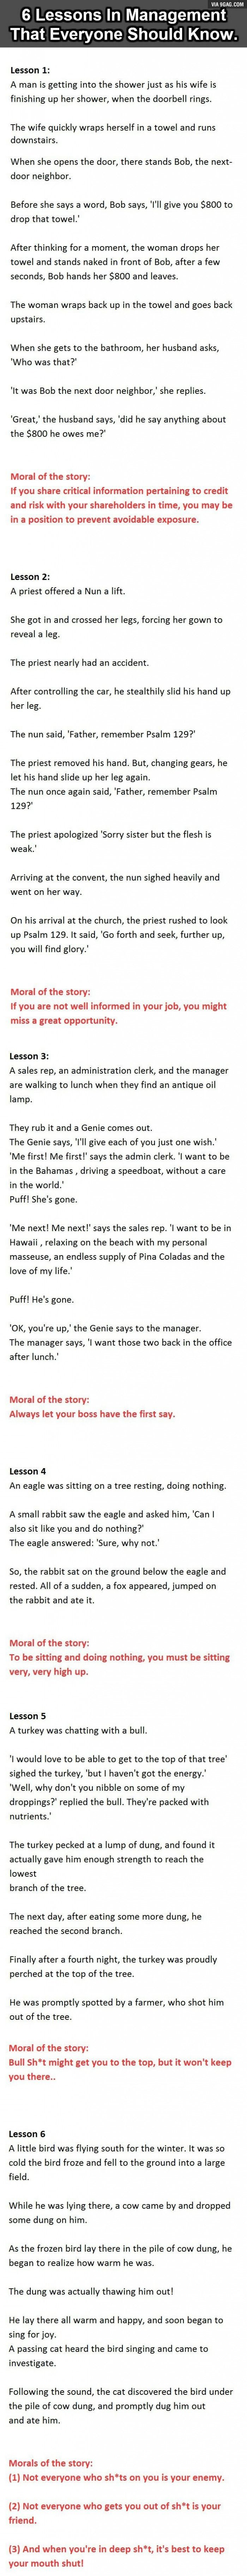 6 Management Lessons That Everyone Should Know - 9GAG